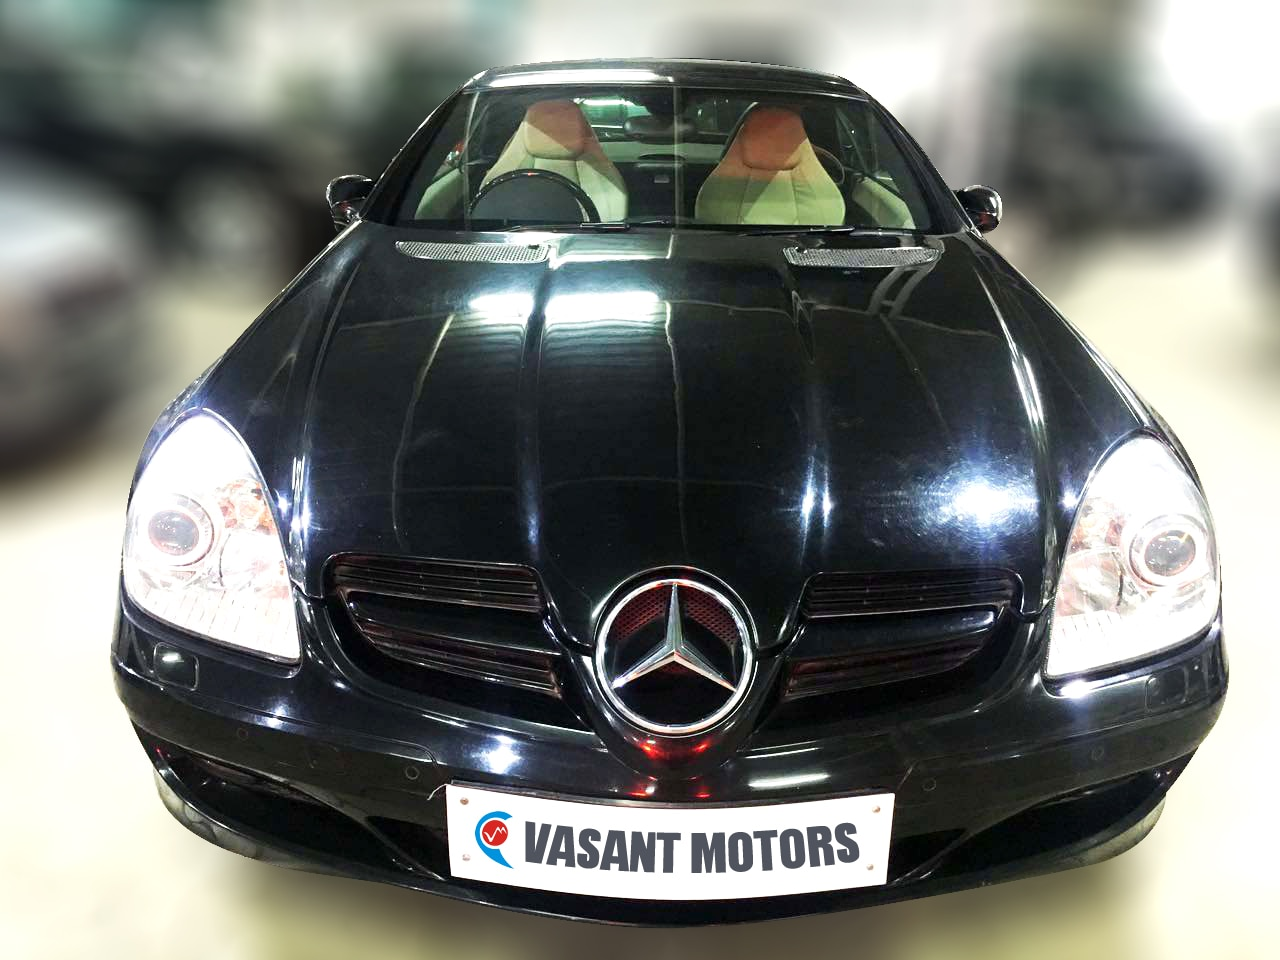 MERCEDES-BENZ SLK, (BLACK COLOR, DIESEL) 2004 model done only 36, 000kms in absolute mint condition... buy now and get one year #service pack from us. For further info call 7569696666